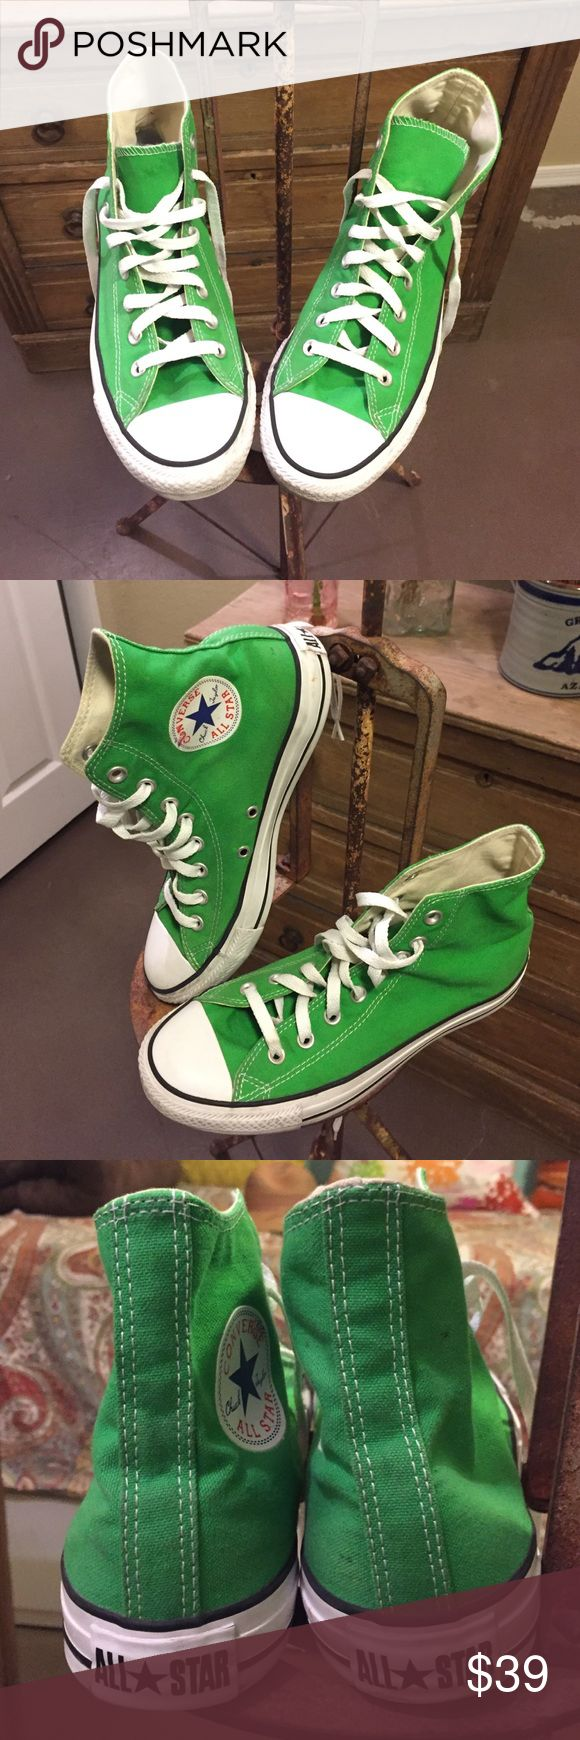 Green Converse High Tops Women's Size 9/Men's Size 7. These are in excellent condition only worn a handful of times. Converse Shoes Sneakers